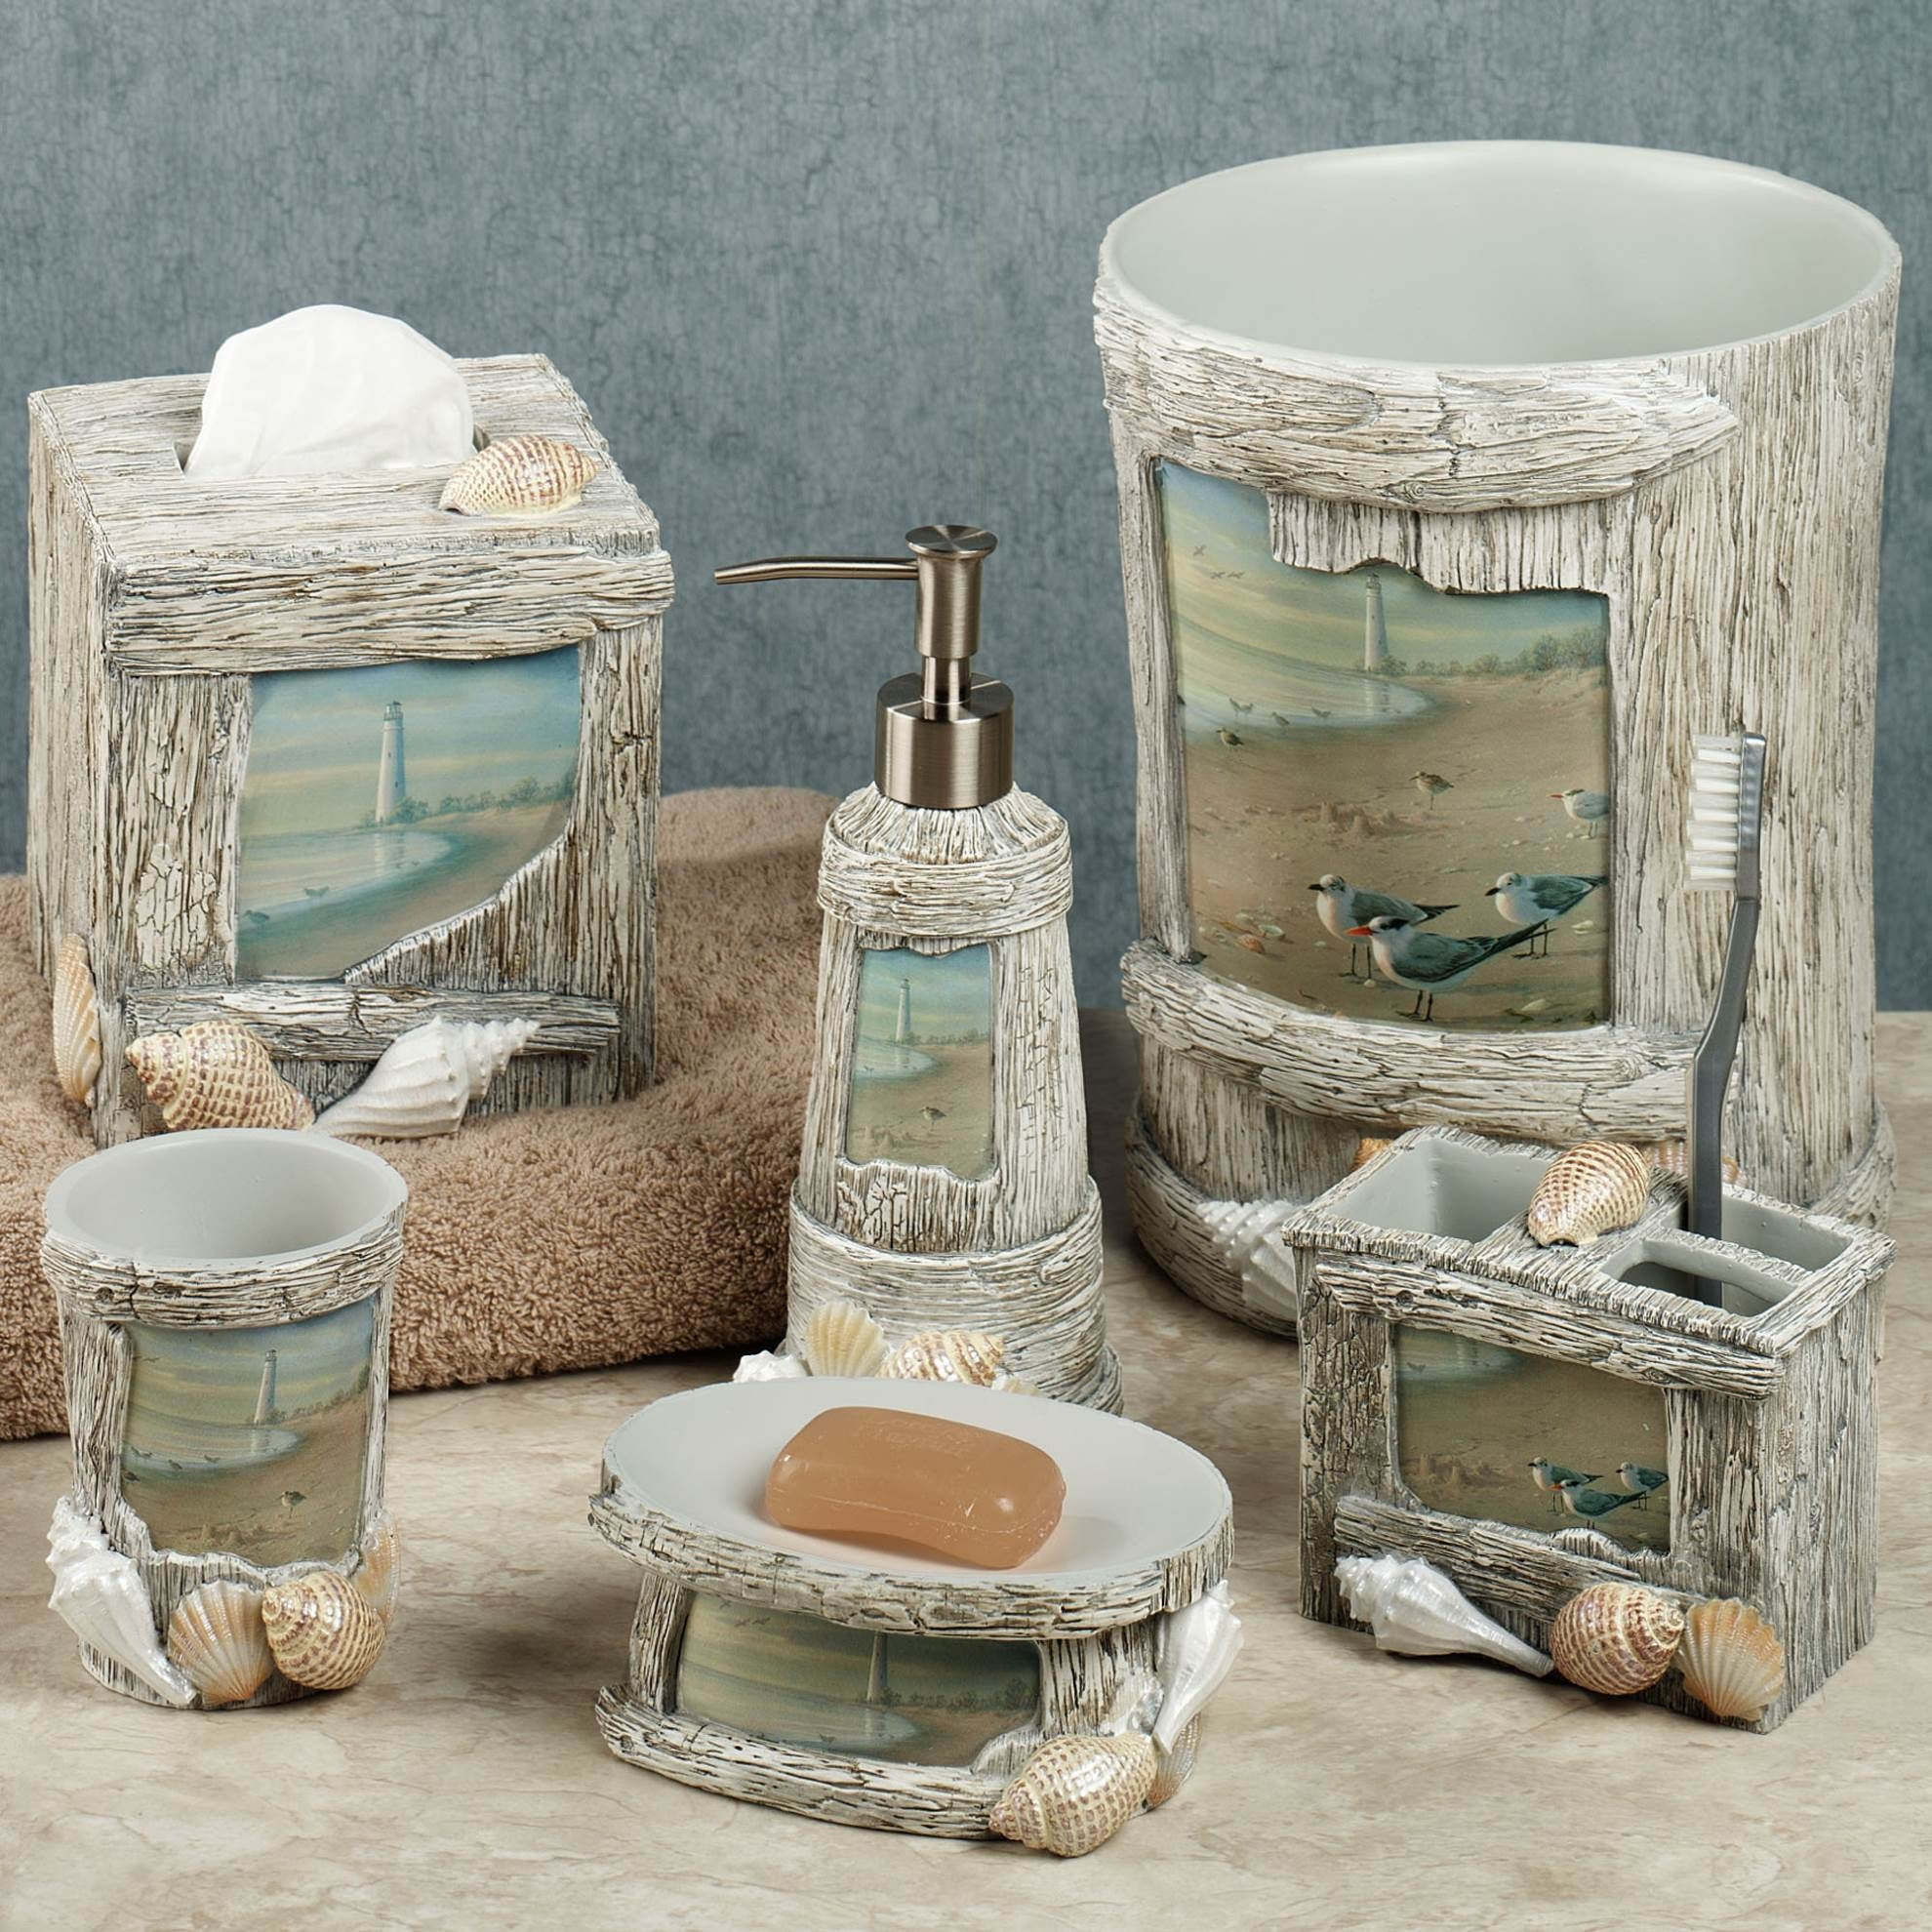 Lighthouse Bathroom Rugsbathroom breathtaking luxury nautical bathroom decor with